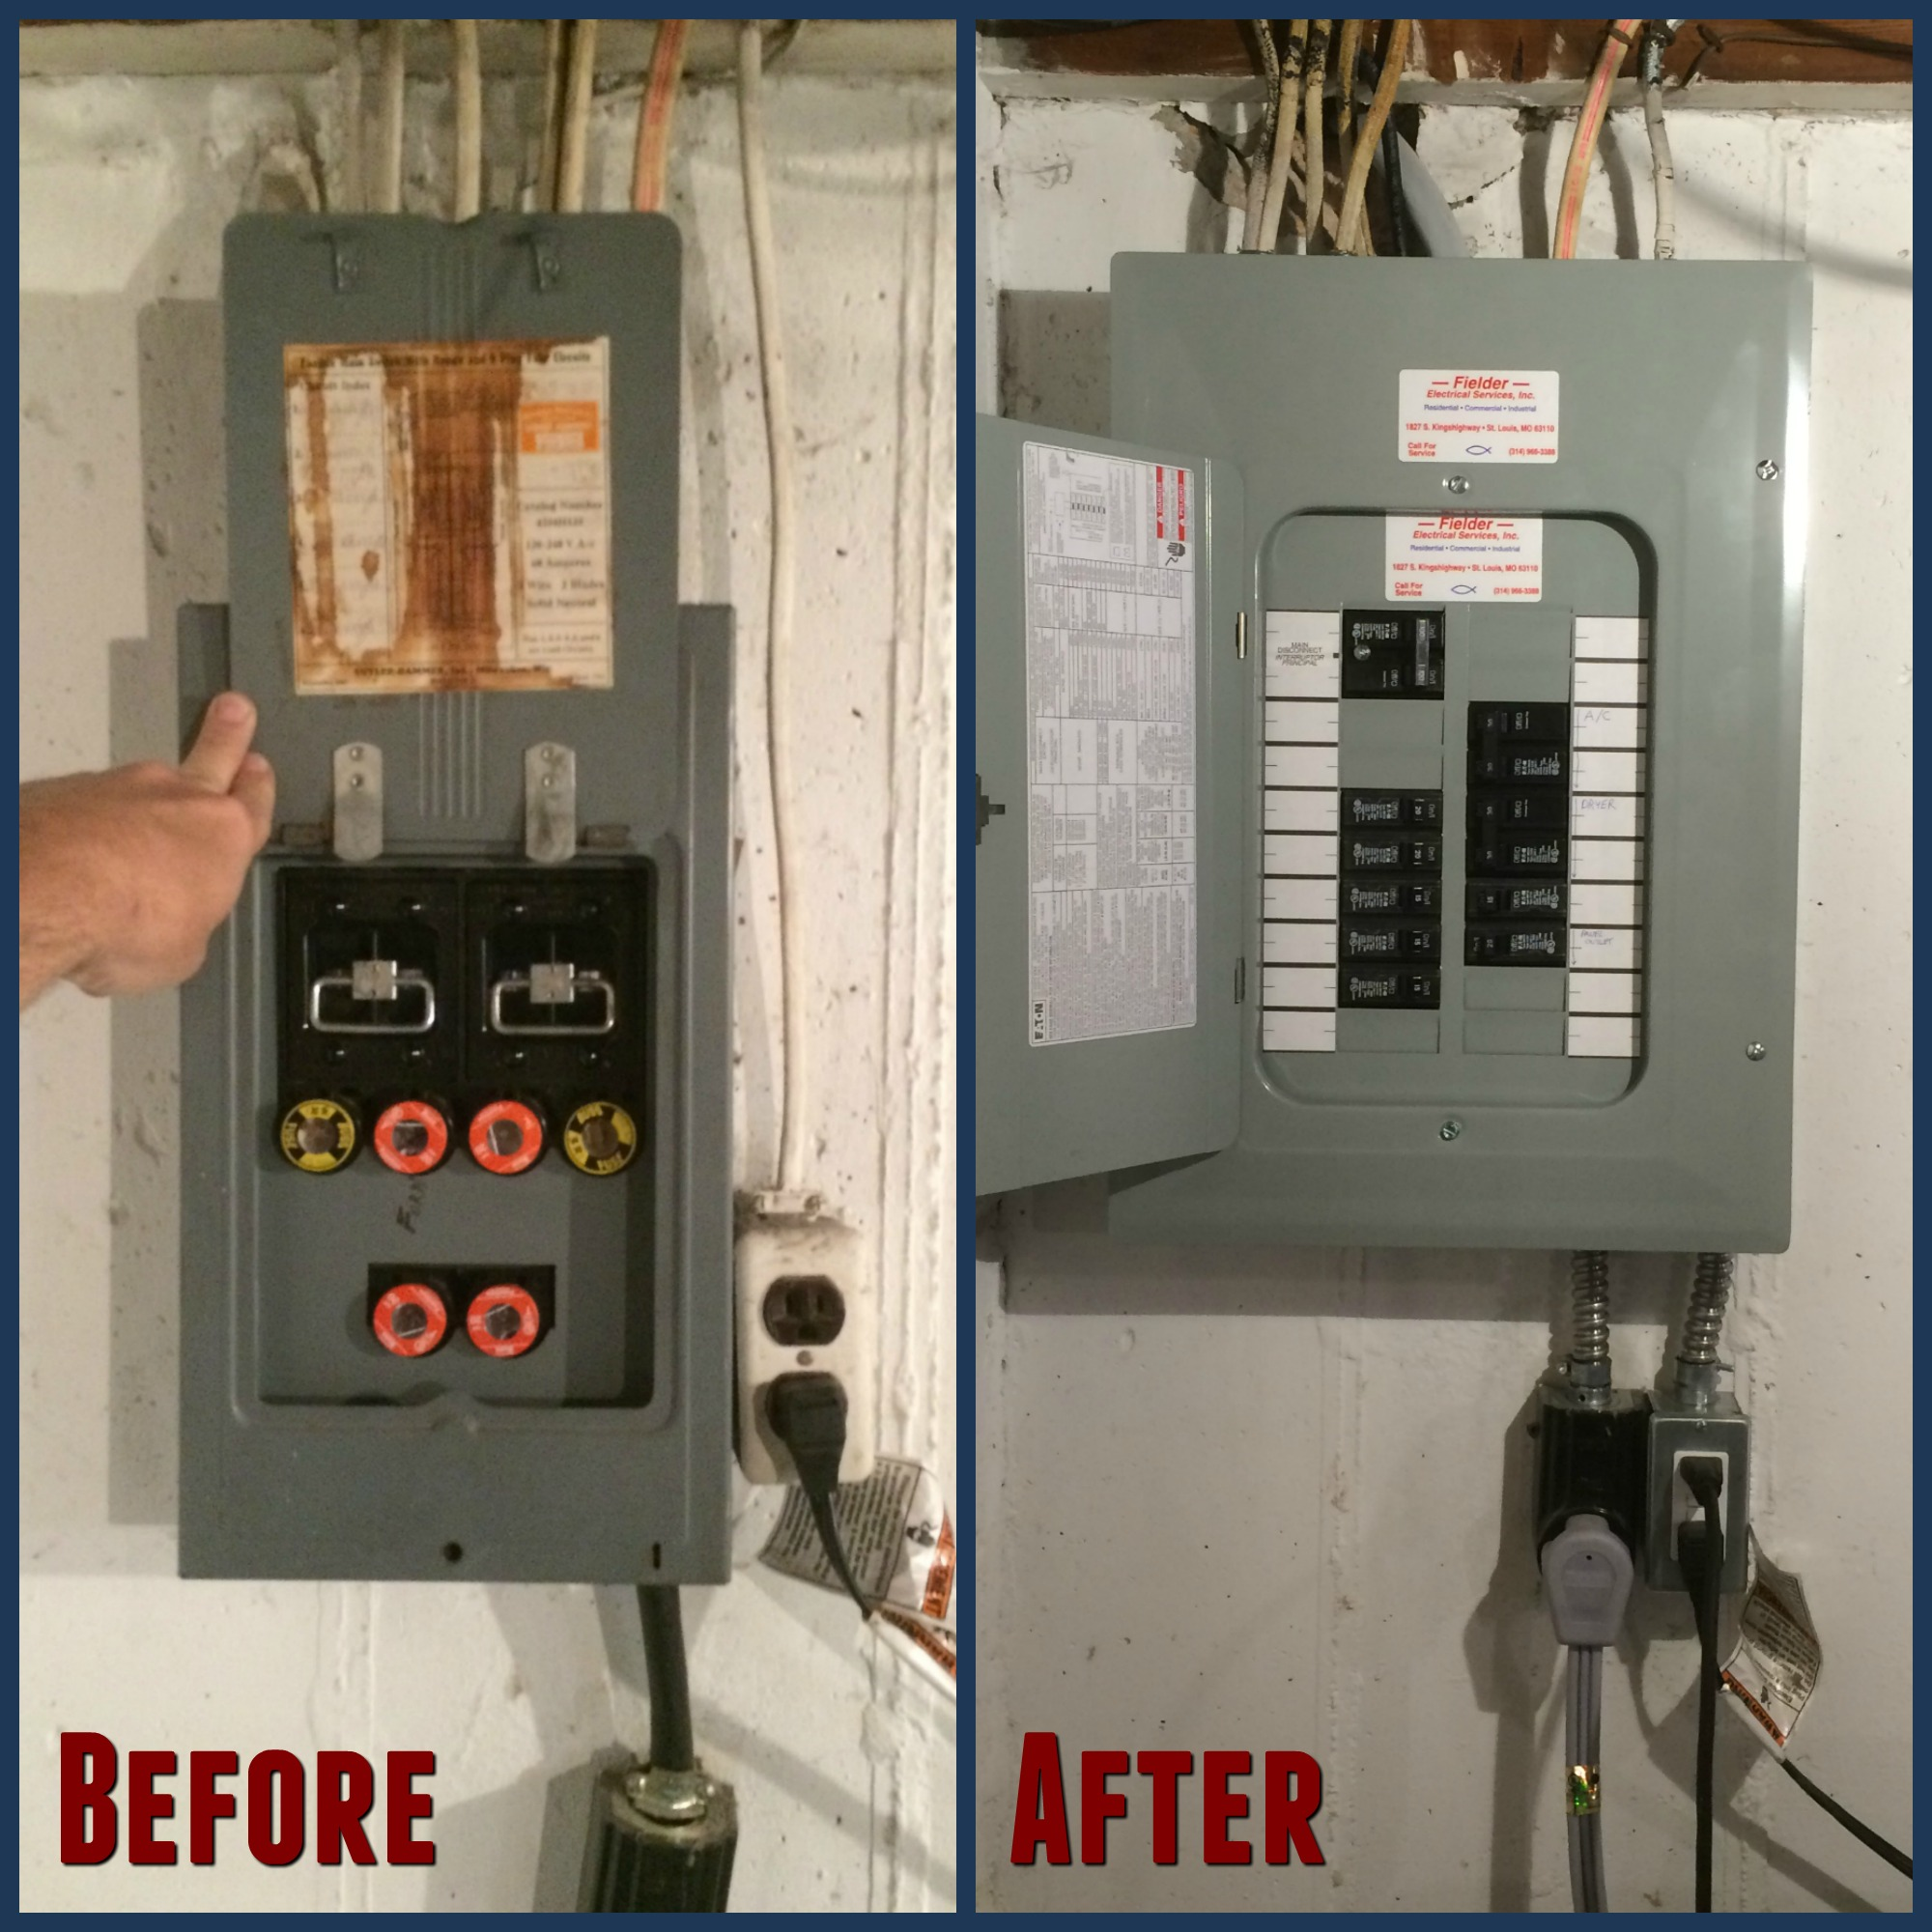 Fuse box replaced with electrical panel replace fuse box with breaker box fuses for circuit panel \u2022 wiring how do you change a fuse in the breaker box at crackthecode.co